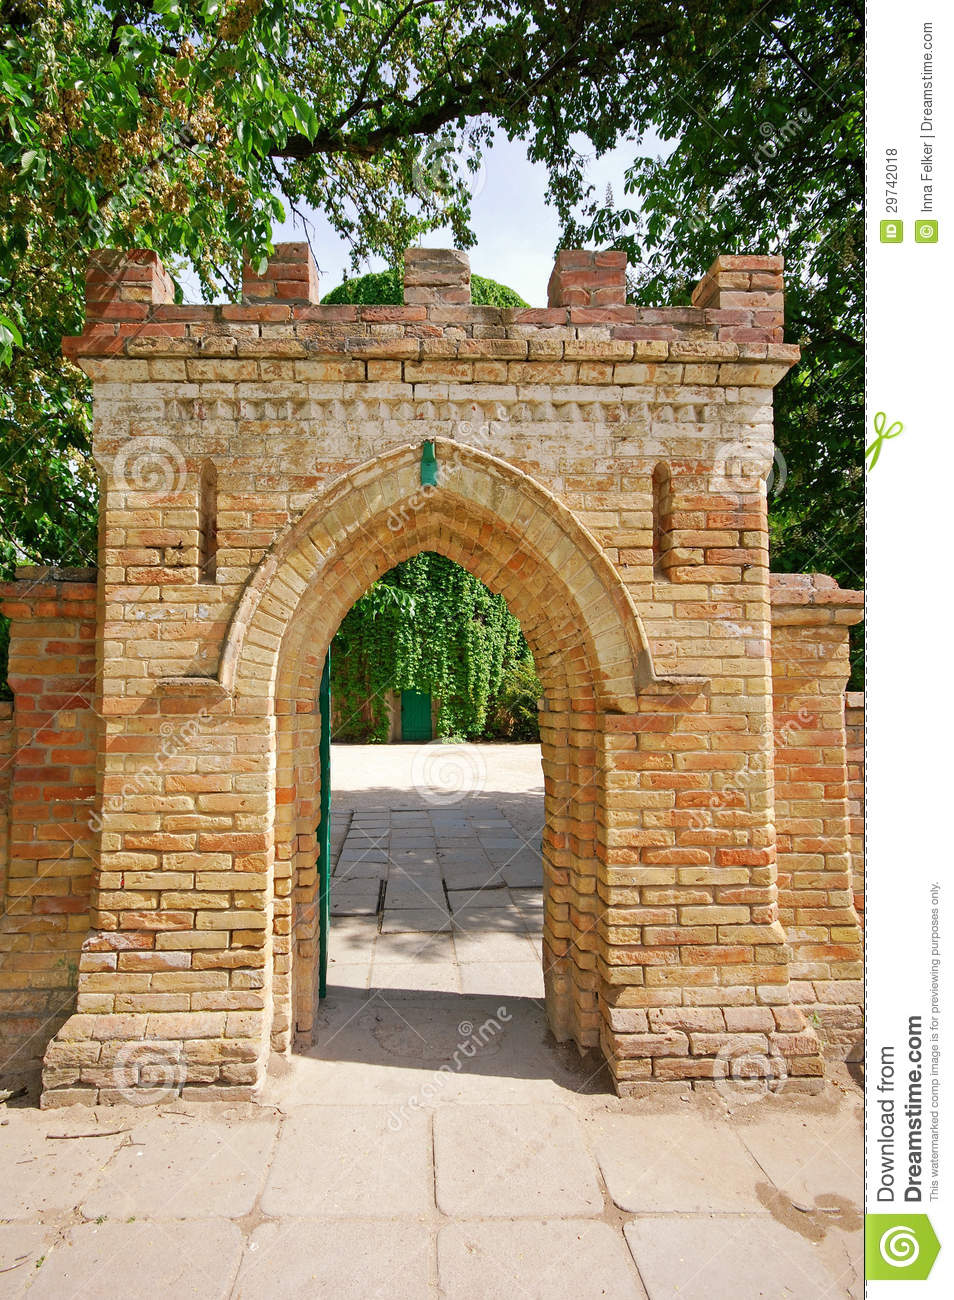 Brick Gate To An Old Castle Stock Photo Image Of Arch